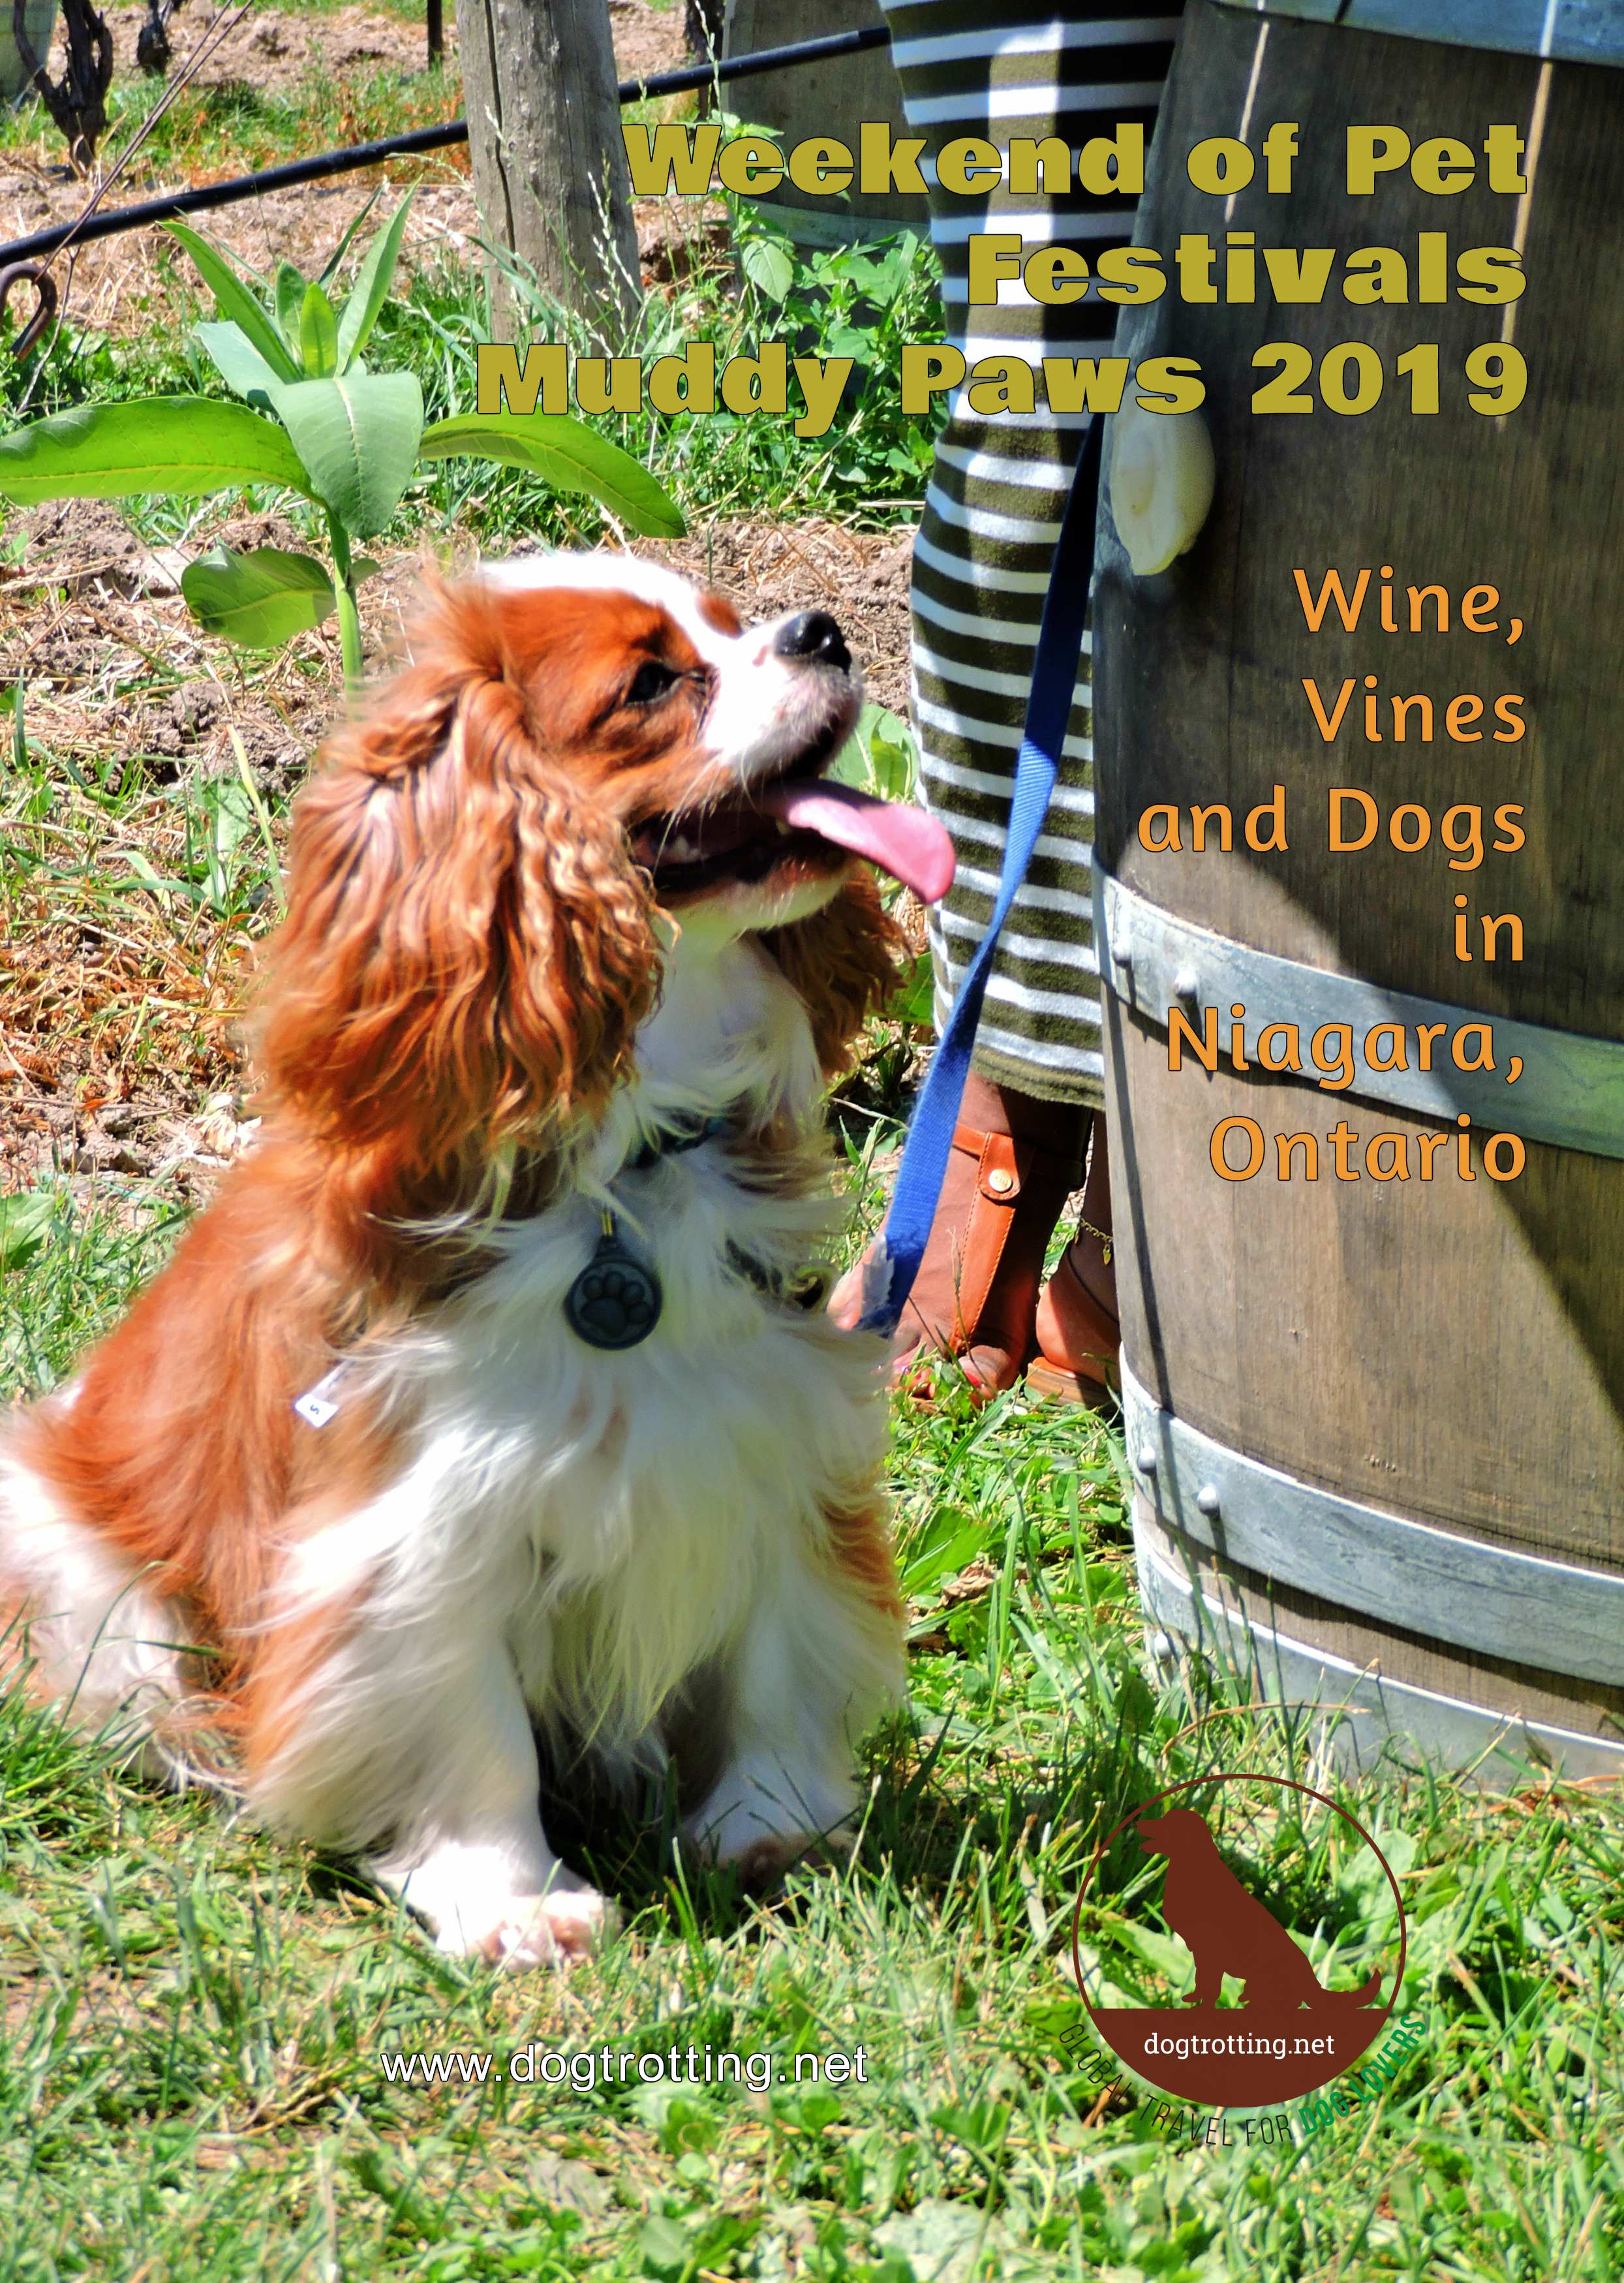 Dogs, Cats, Wine and Festivals – Purrfect Weekend Combination